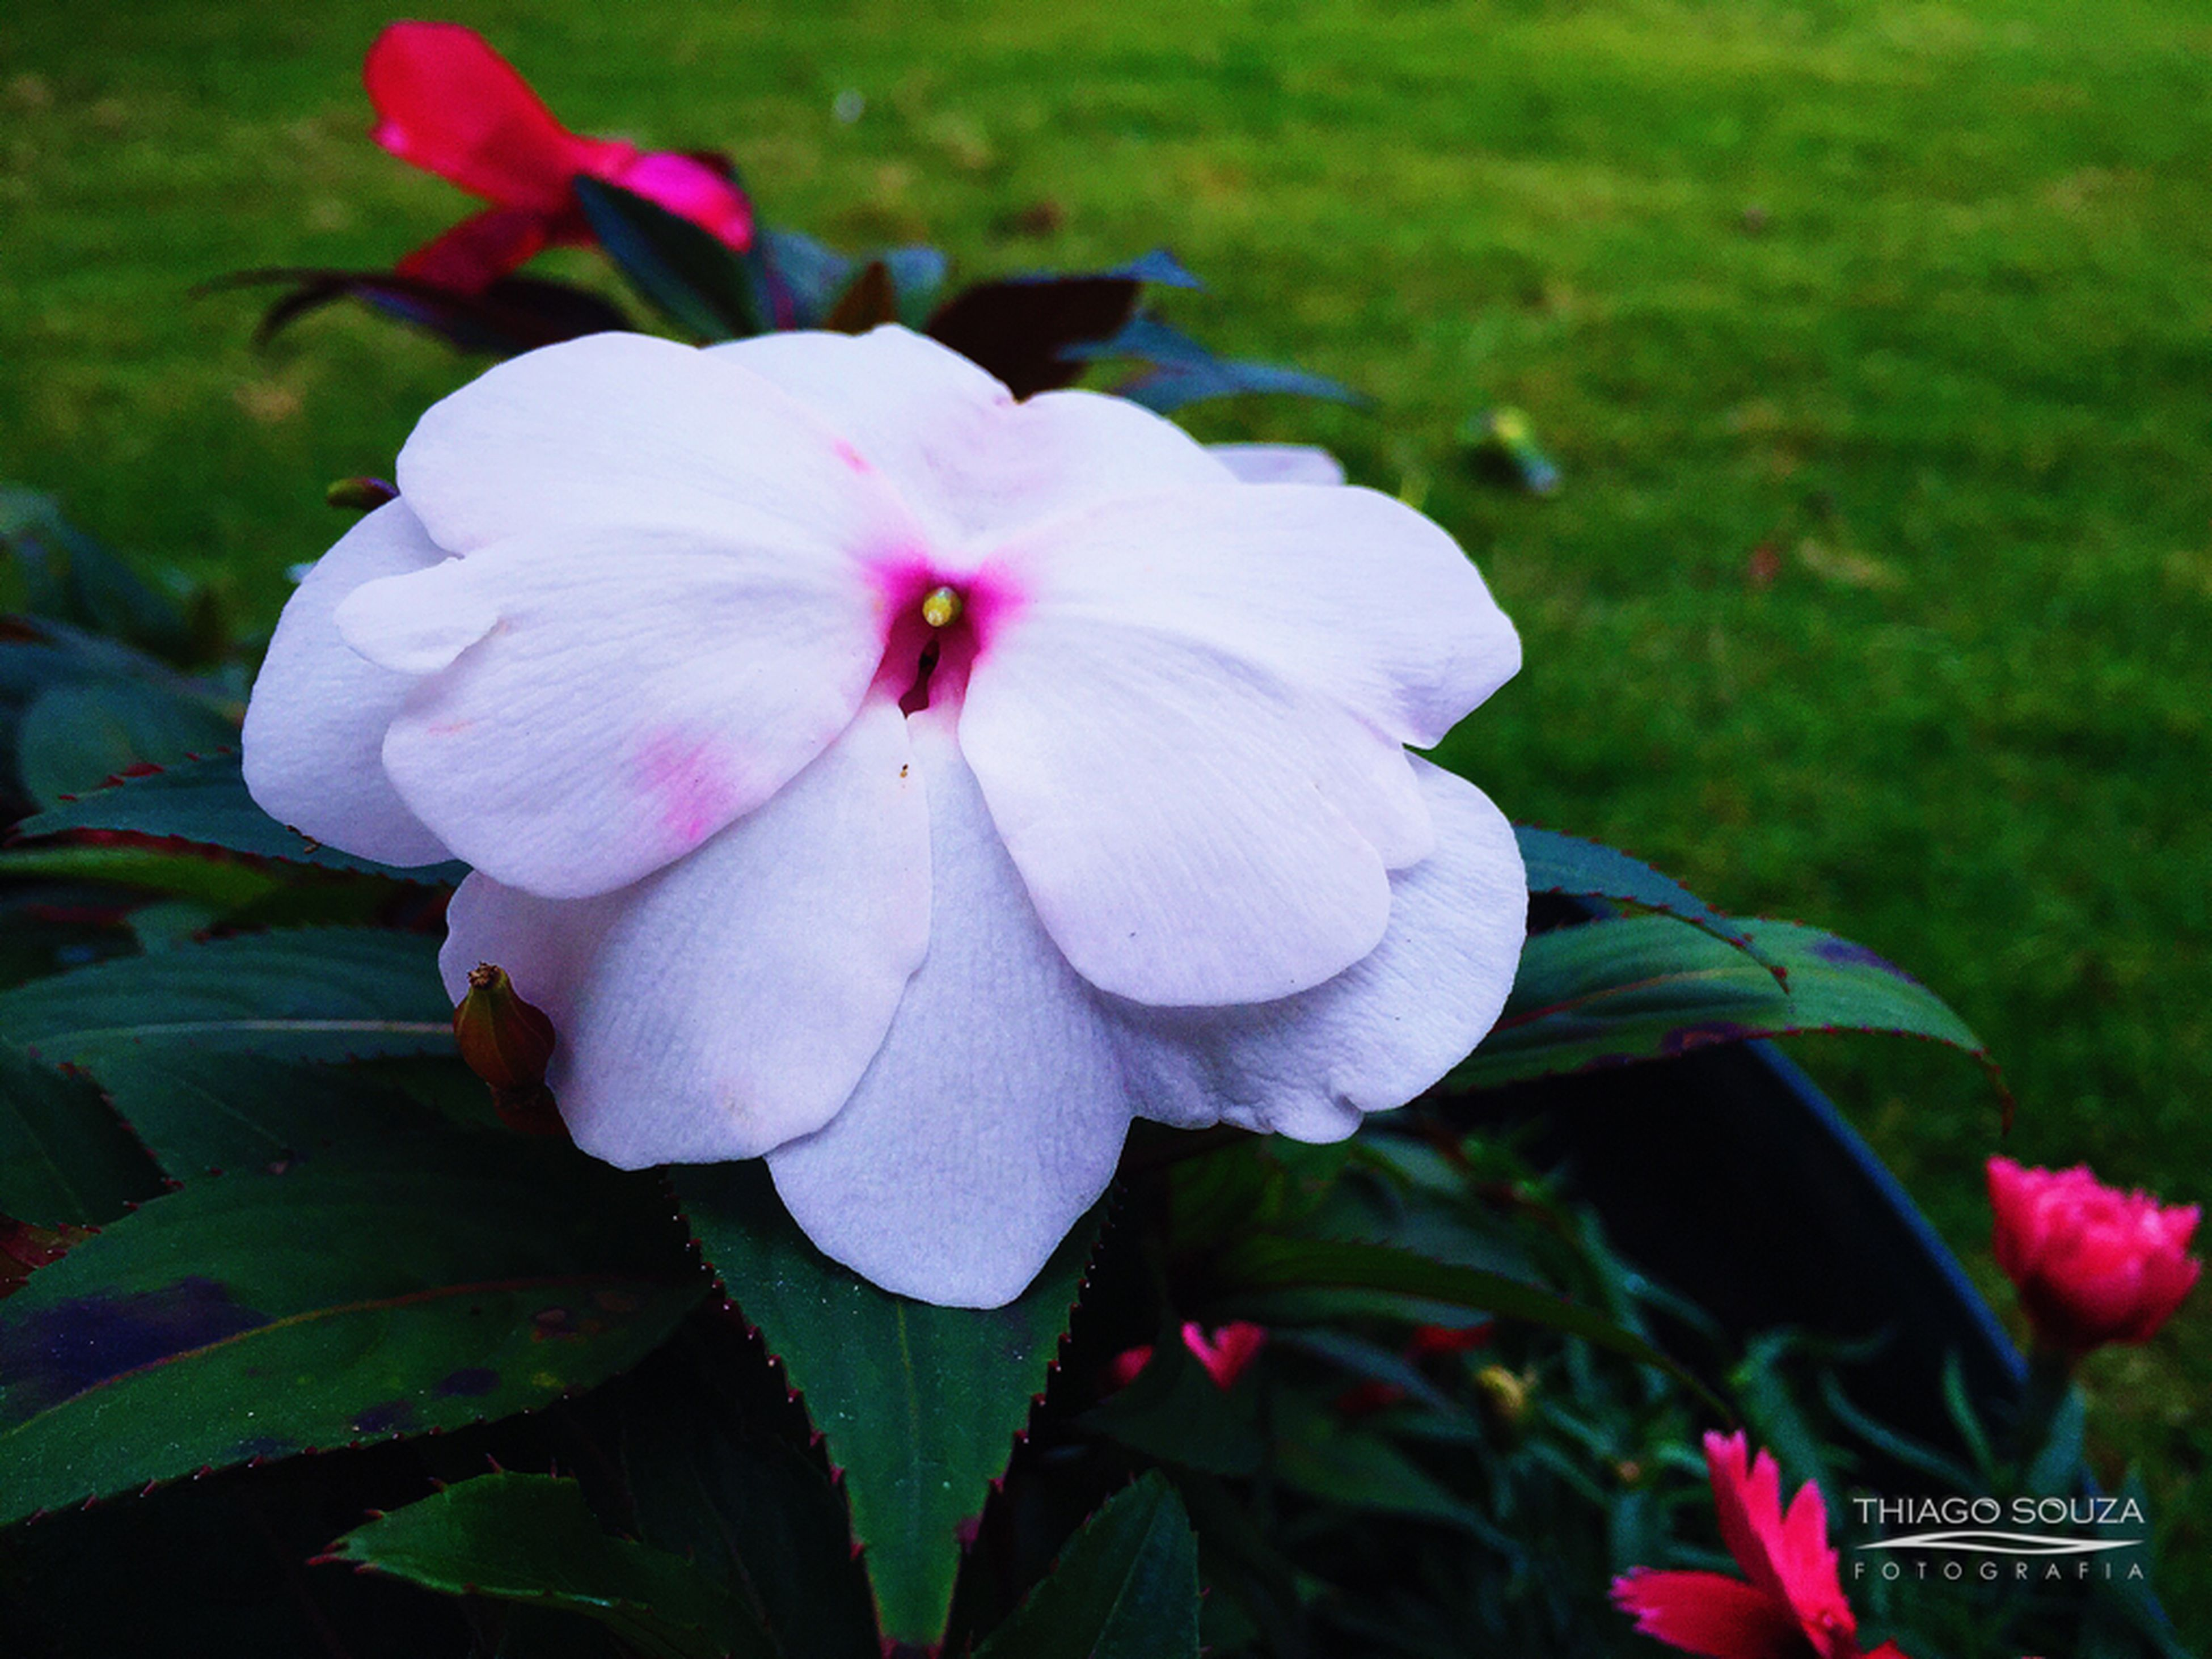 flower, petal, freshness, fragility, flower head, growth, beauty in nature, blooming, pink color, close-up, focus on foreground, nature, plant, leaf, high angle view, park - man made space, day, in bloom, outdoors, field